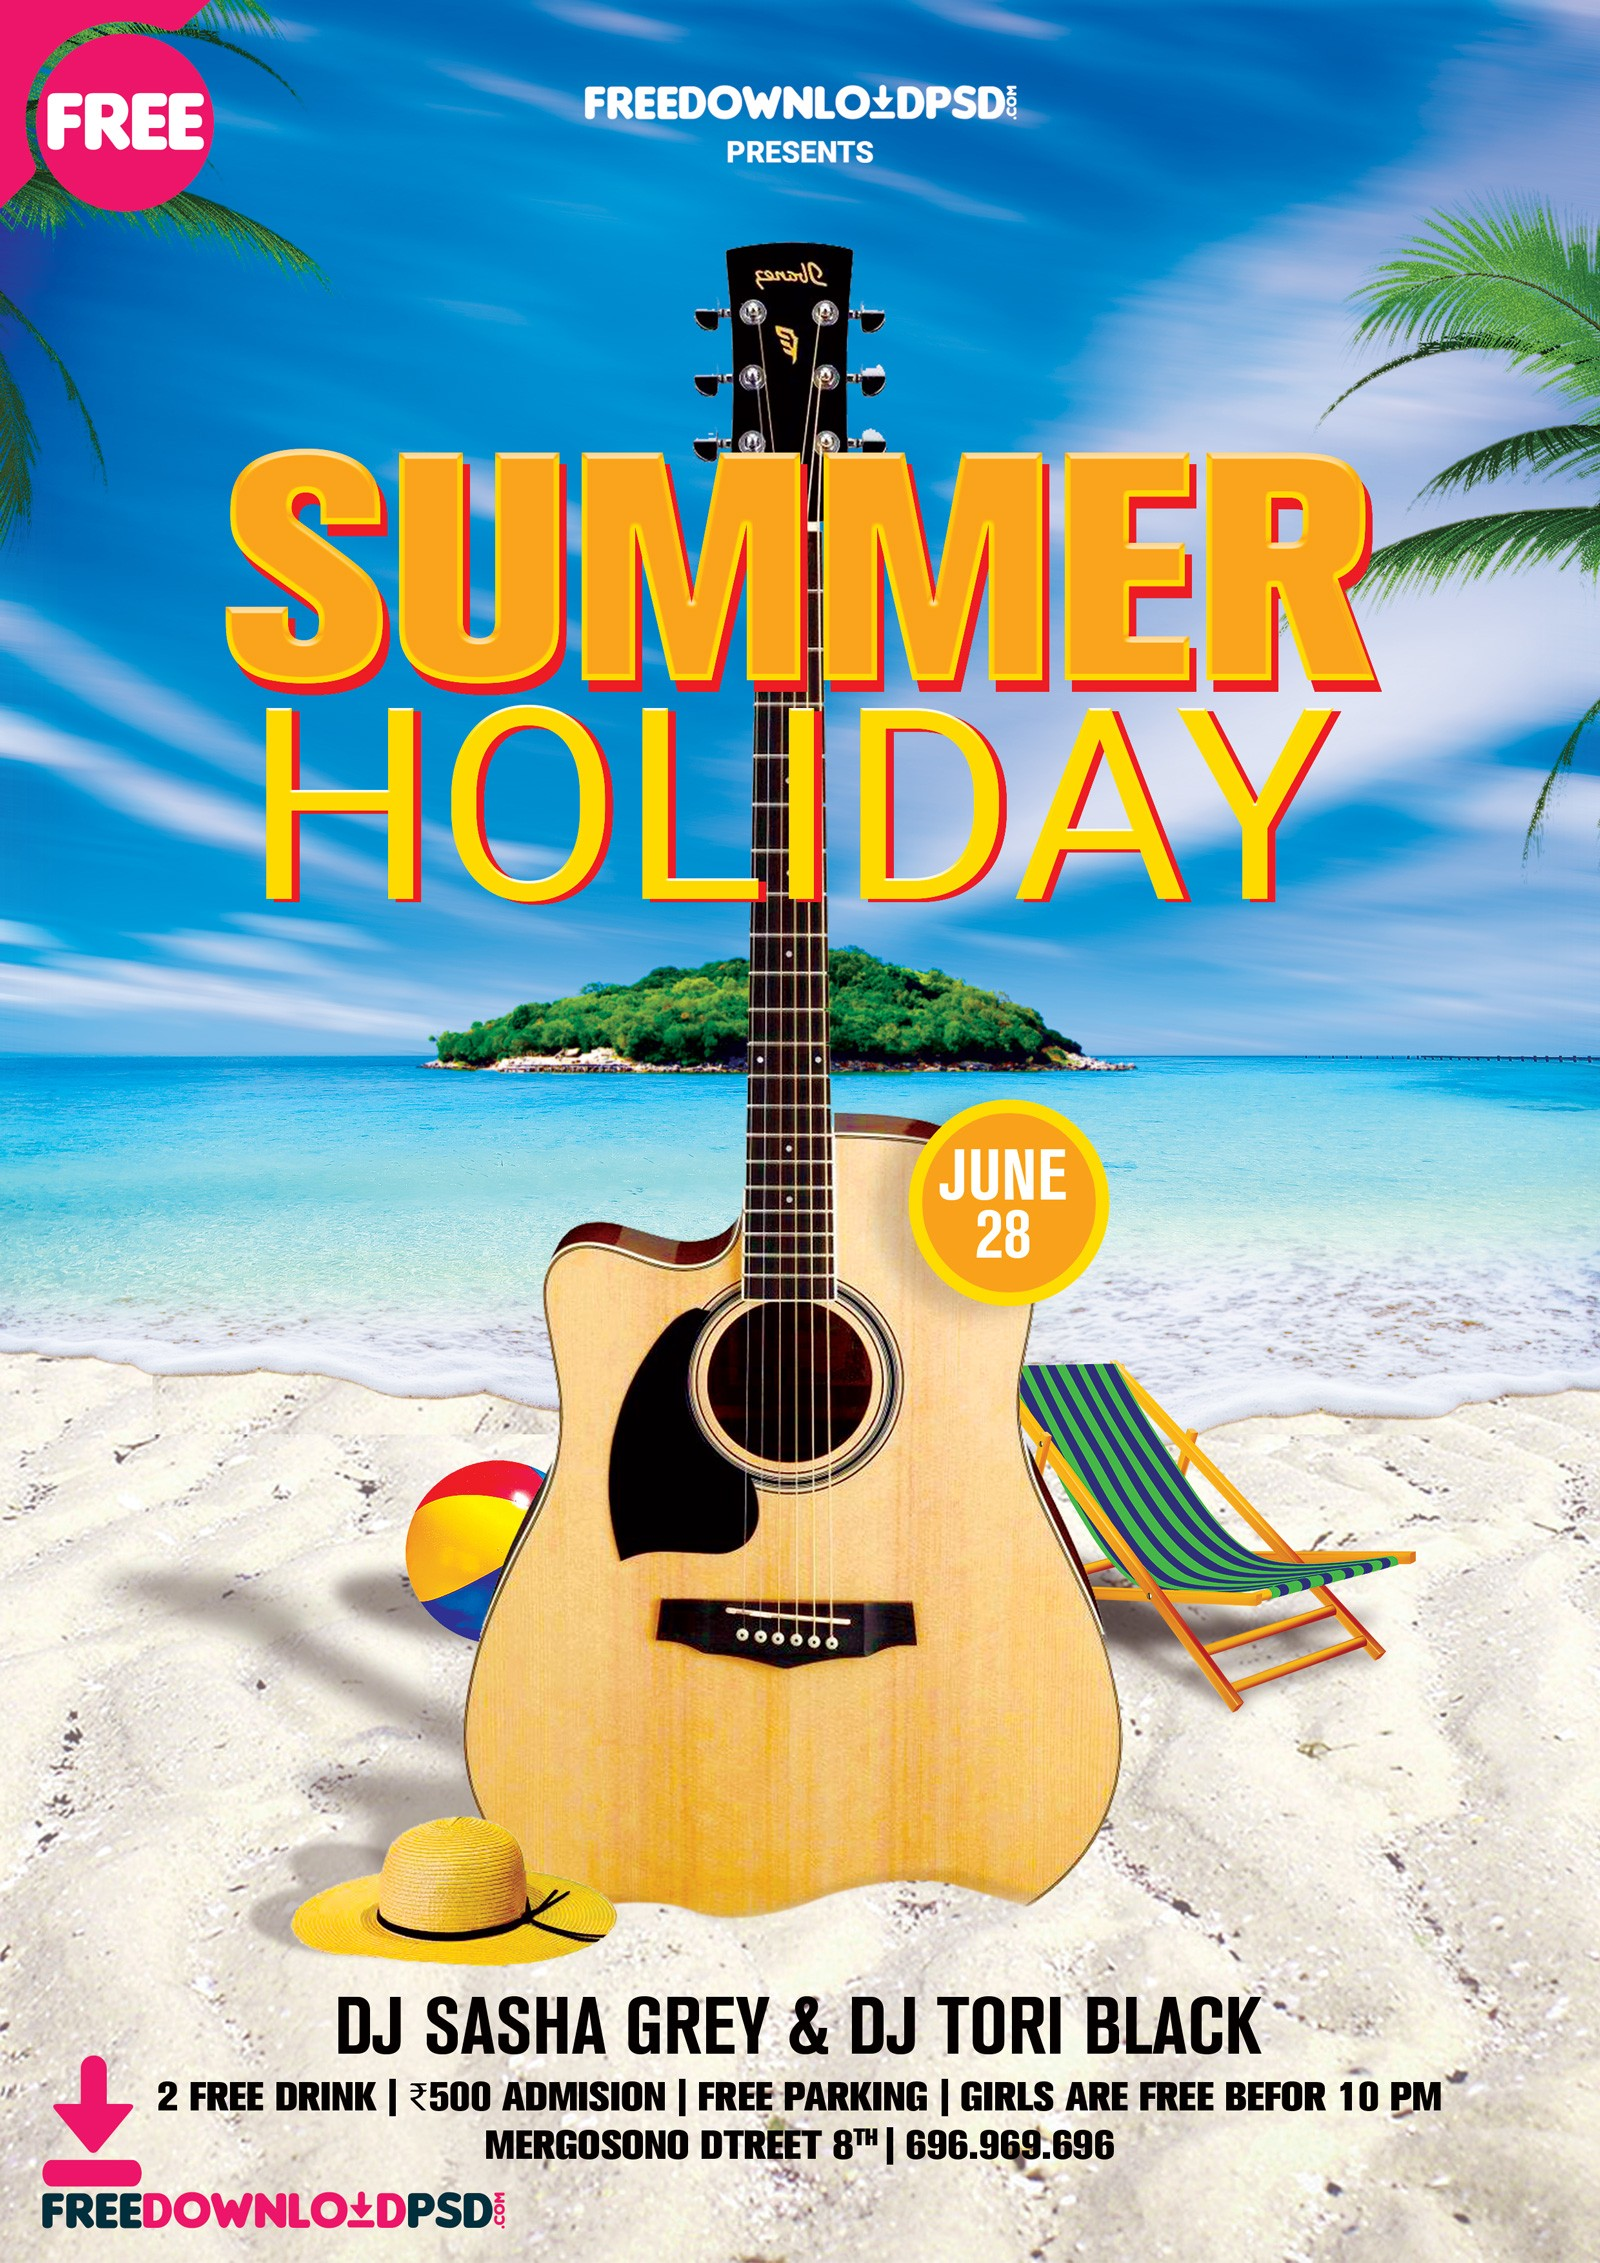 Summer Holiday Flyer Template PSD